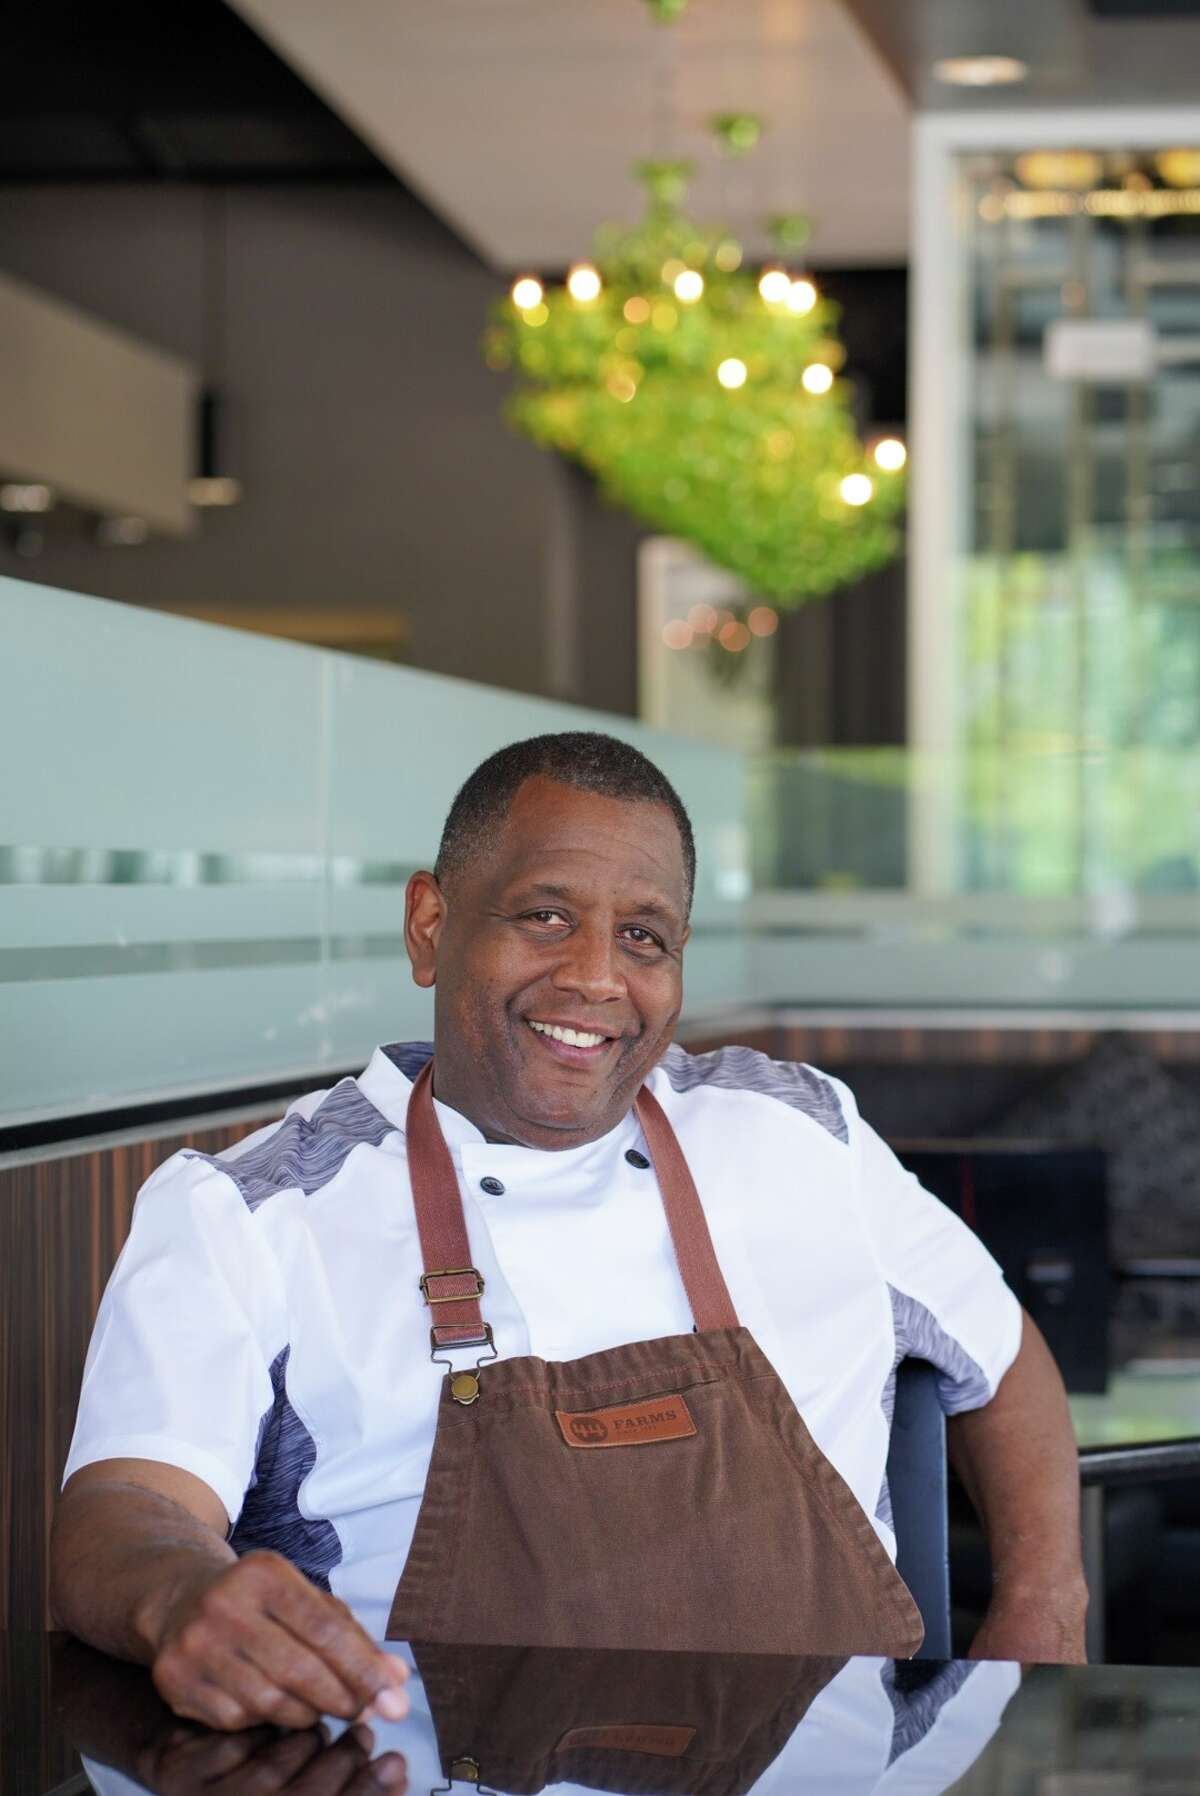 Chef Mark Holley will take over the kitchenat the new David St. at Hermann Park when it reopens fall 2019.